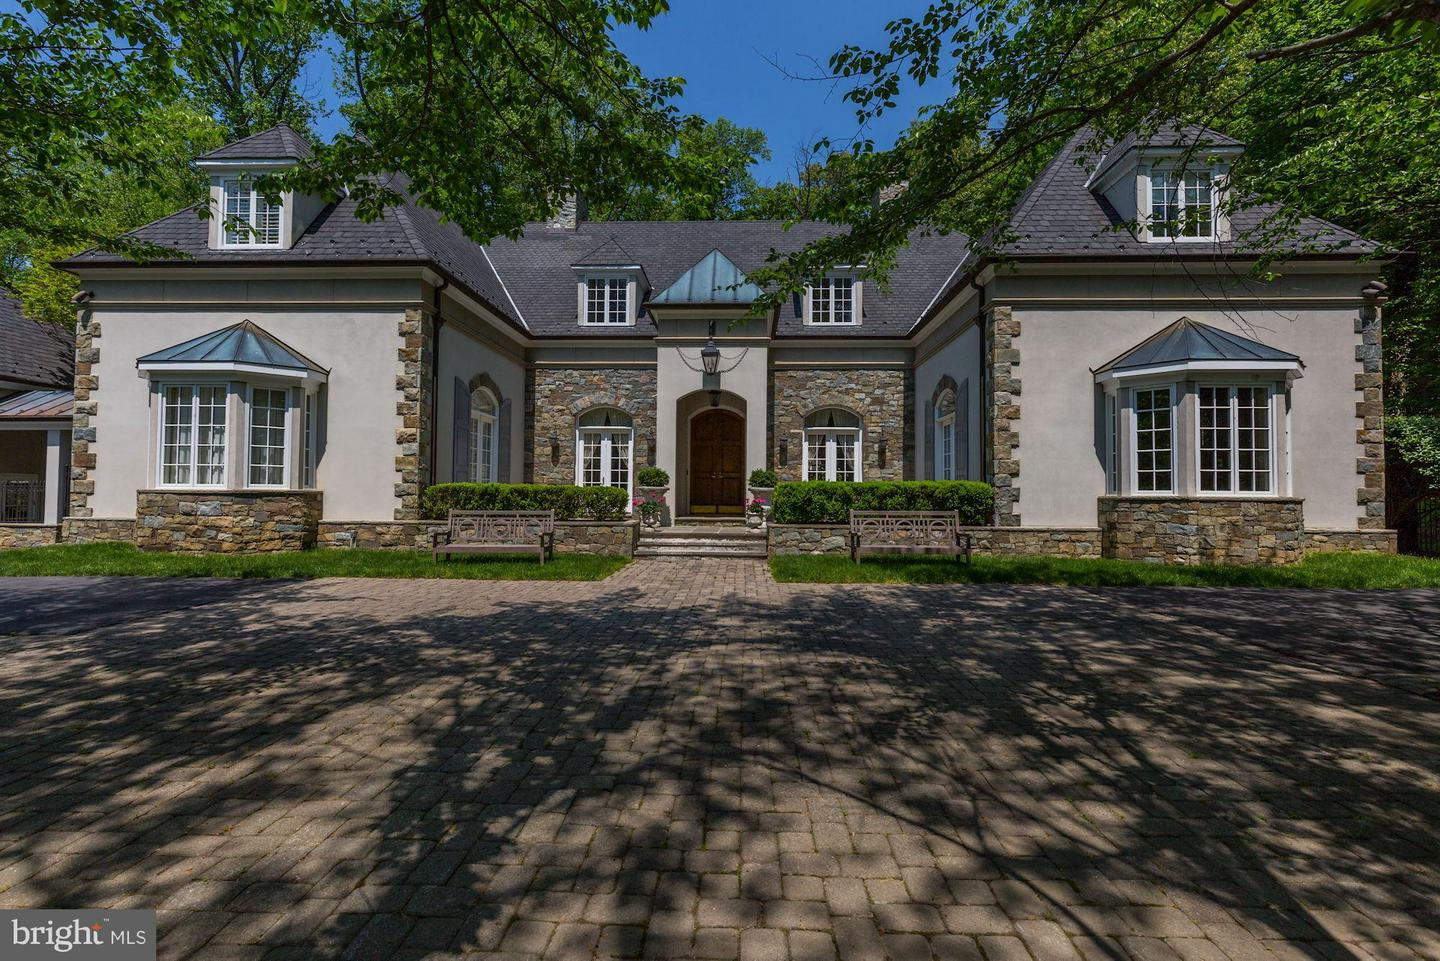 11218 RIVER VIEW DRIVE, POTOMAC, Maryland